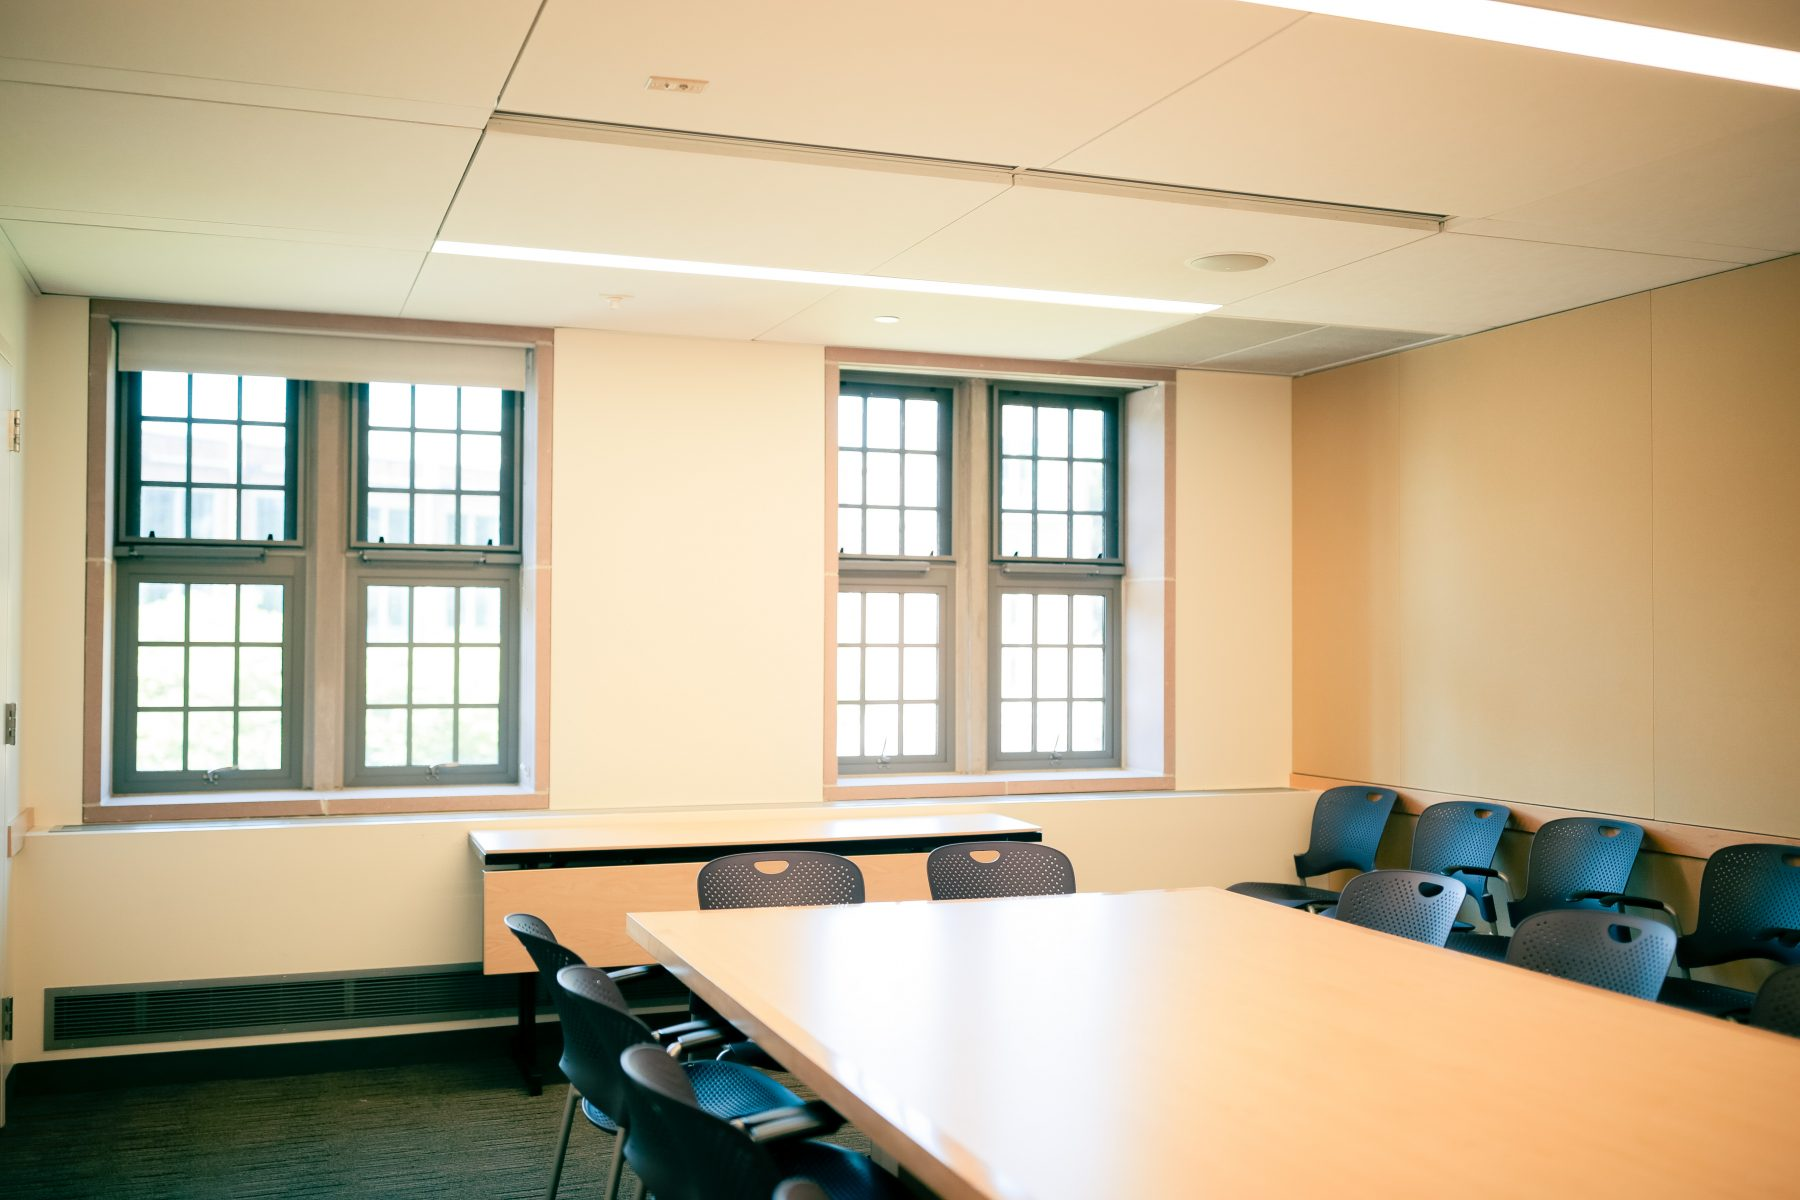 Each conference room includes a projector and Solstice Pod